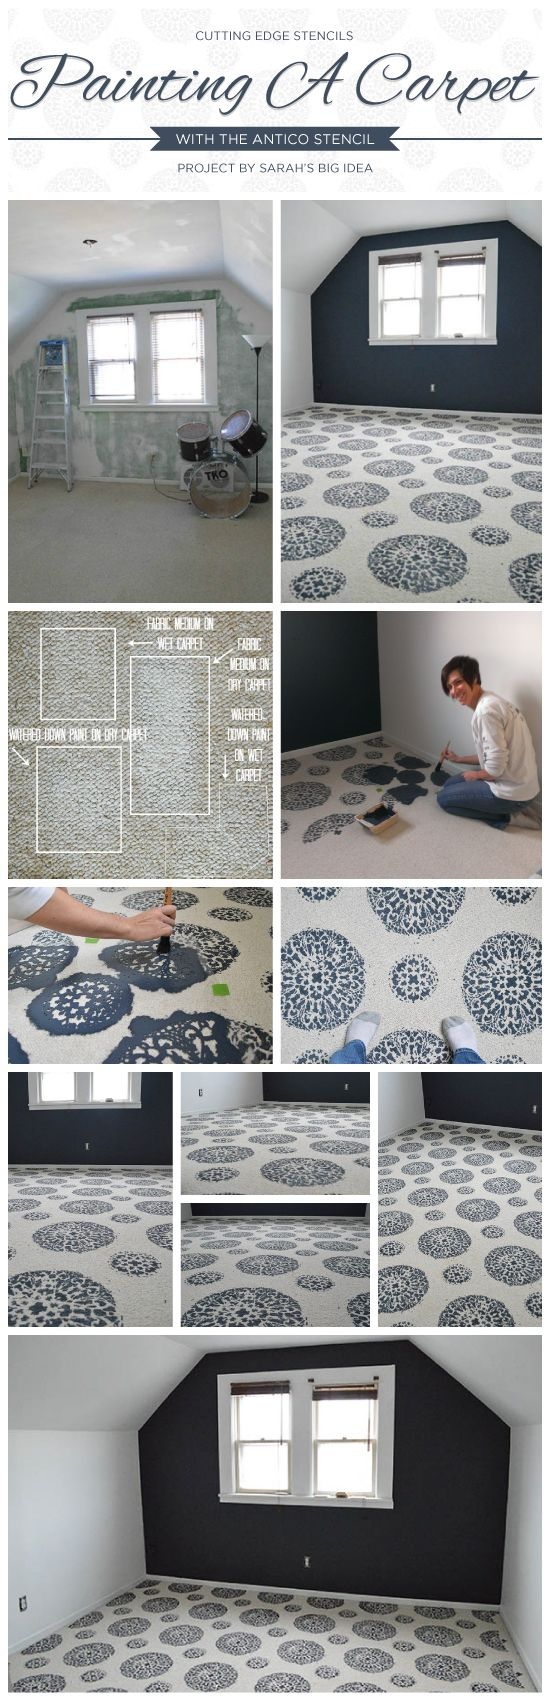 Cutting Edge Stencils shares a DIY painted carpet using the Antico Allover stencil pattern. http://www.cuttingedgestencils.com/antico-allover-wall-pattern.html